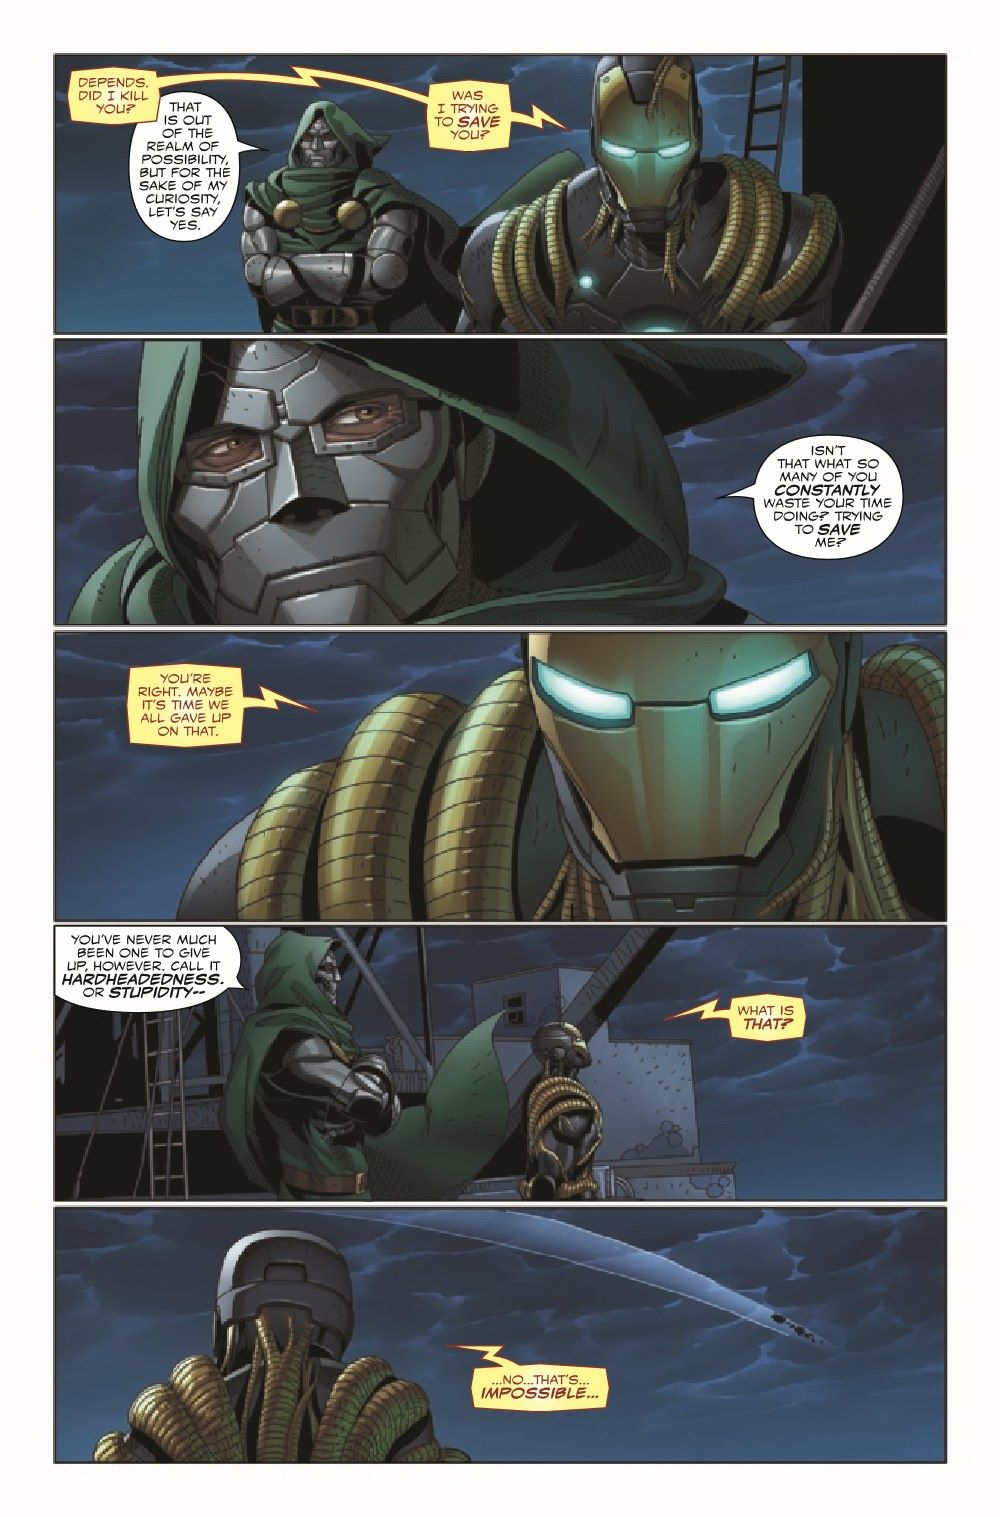 IMKIB2020001_Preview-6 ComicList Previews: KING IN BLACK IRON MAN DOCTOR DOOM #1